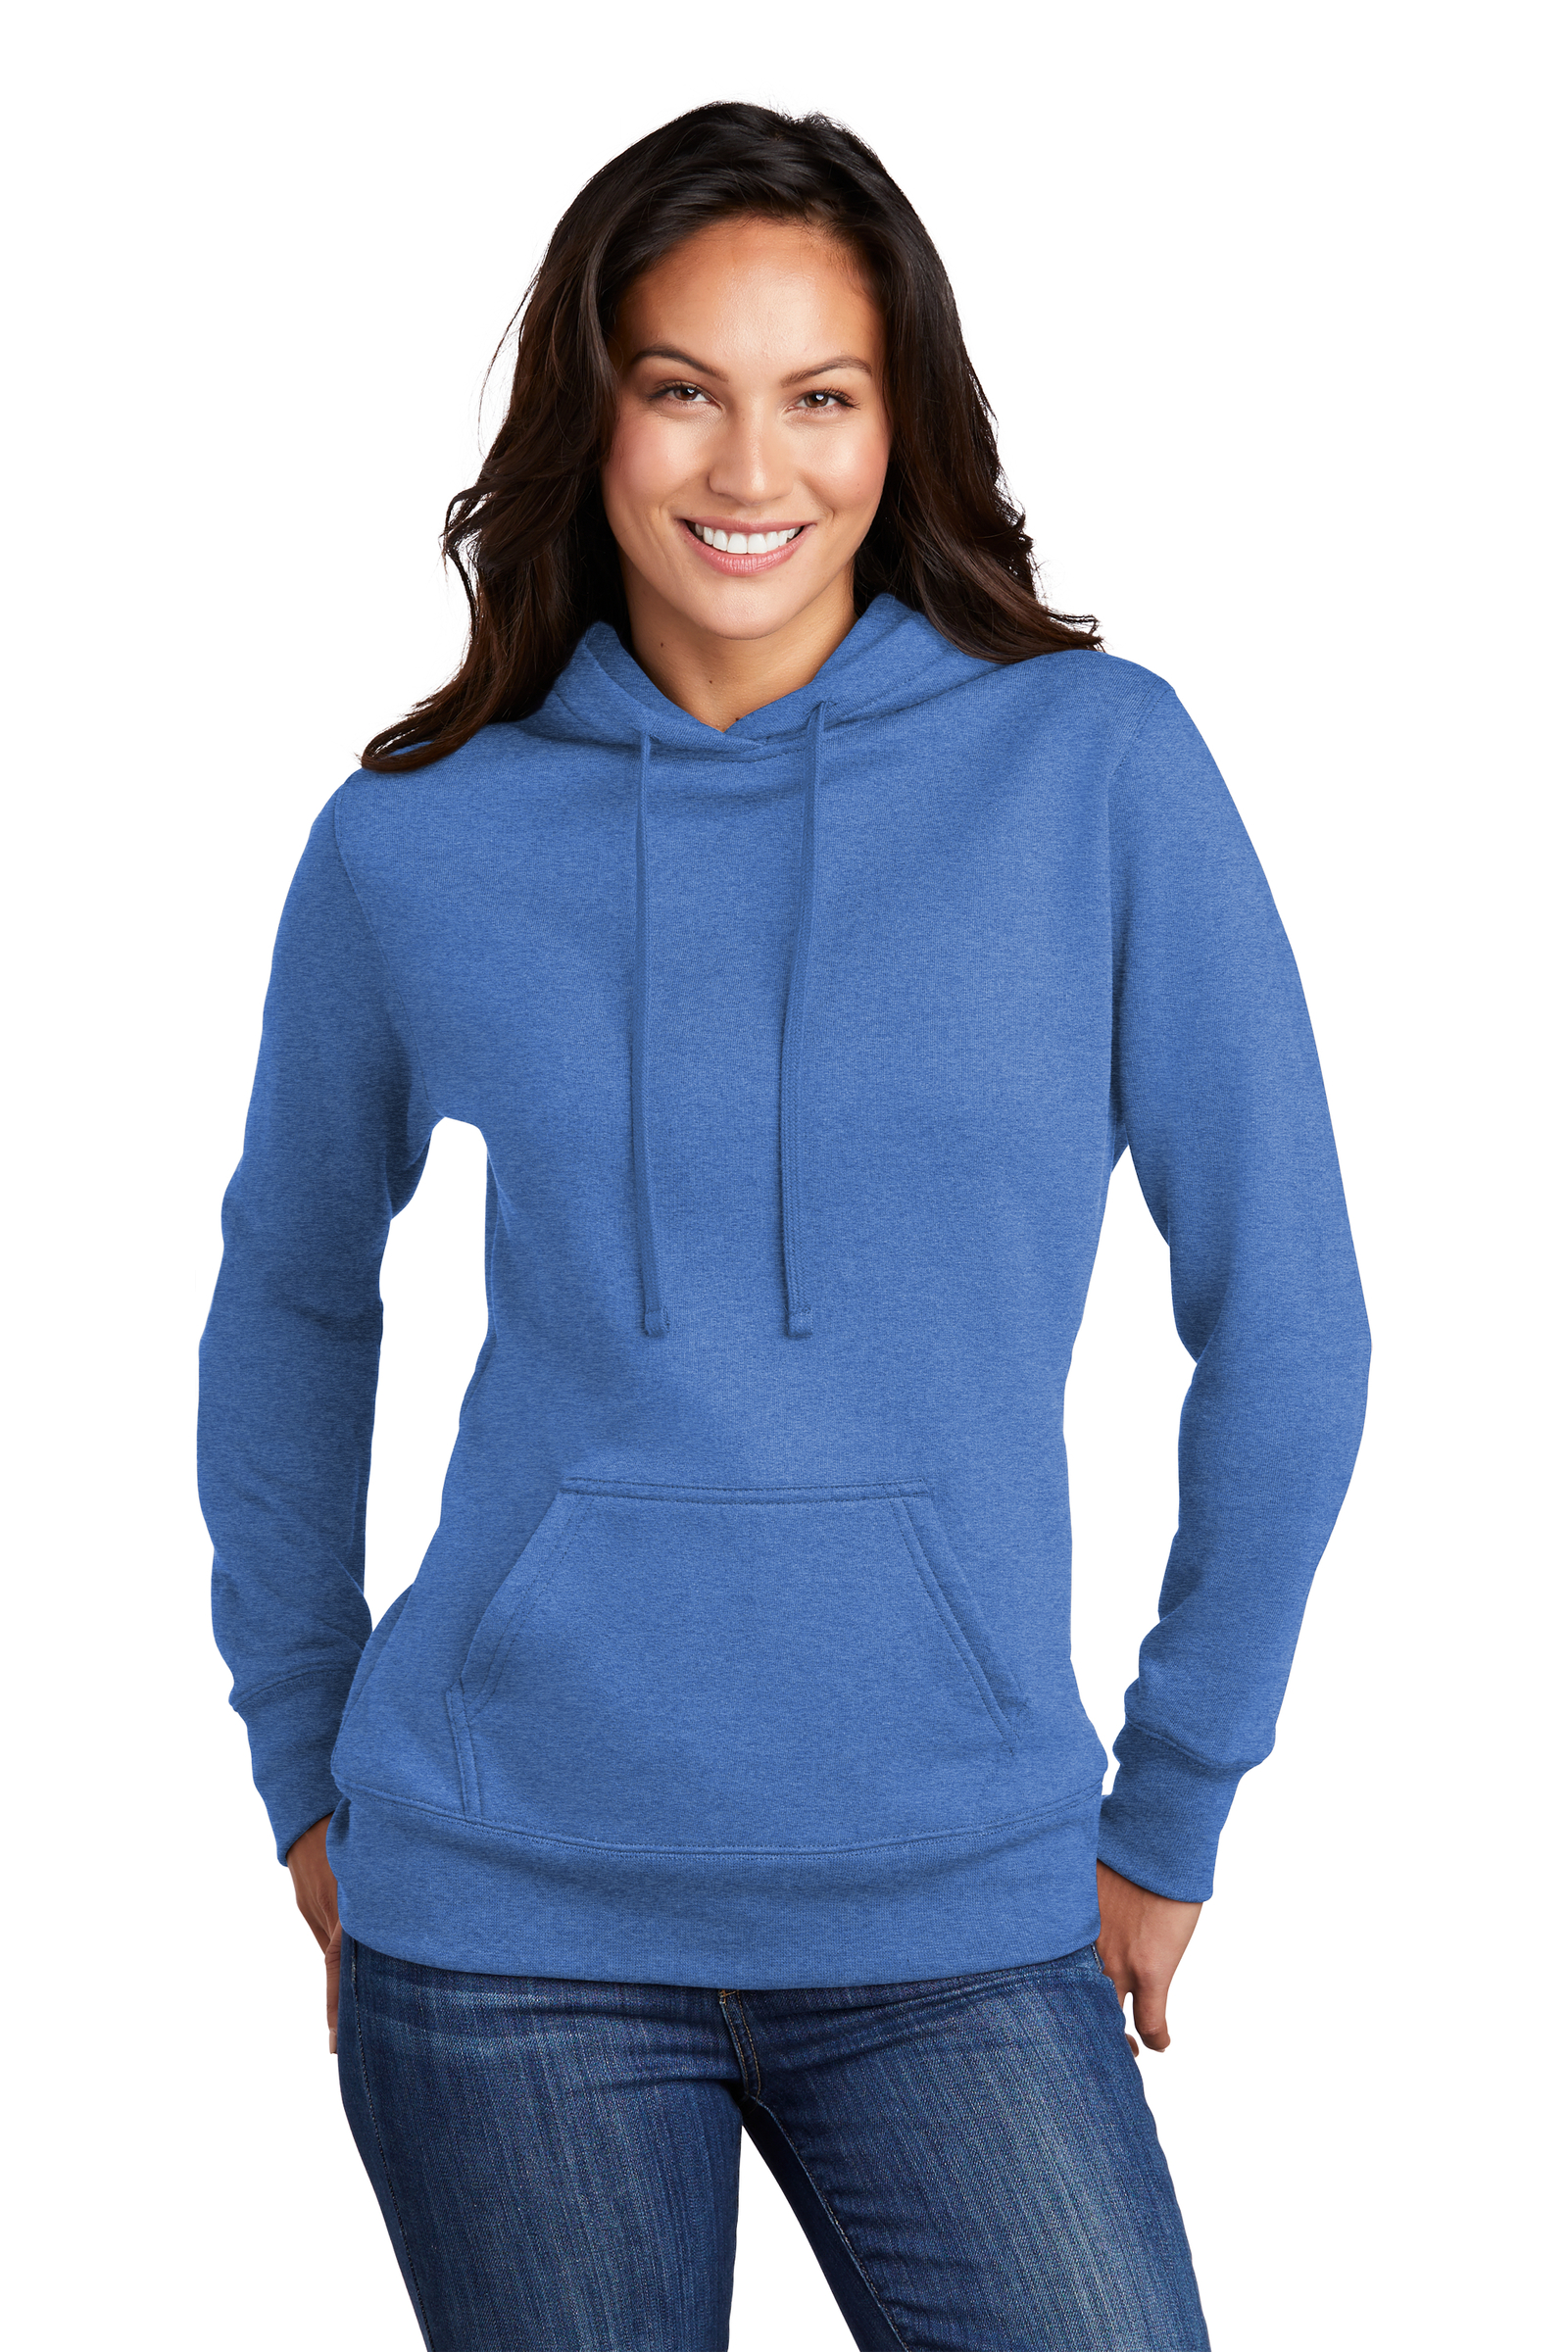 Port & Company Printed Women's Core Fleece Pullover Hooded Sweatshirt